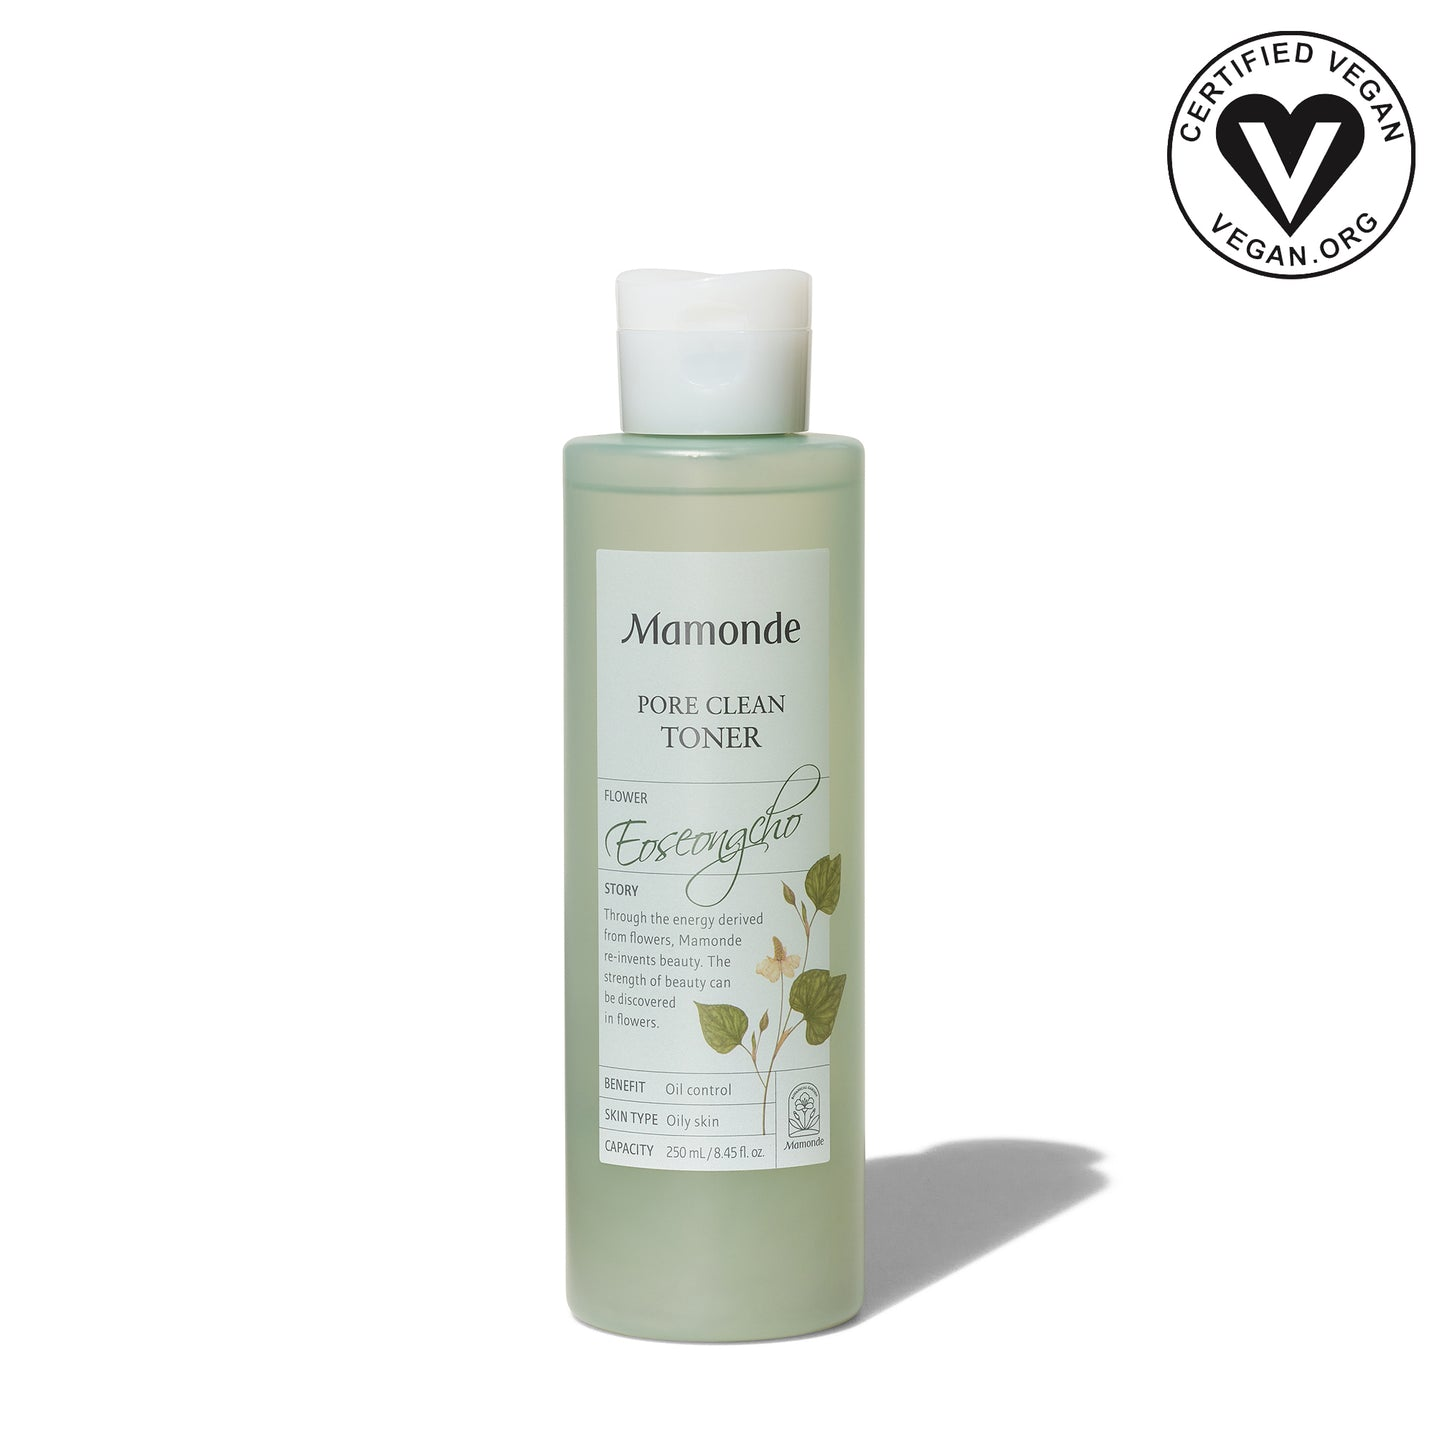 Mamonde<br>Pore Clean Toner